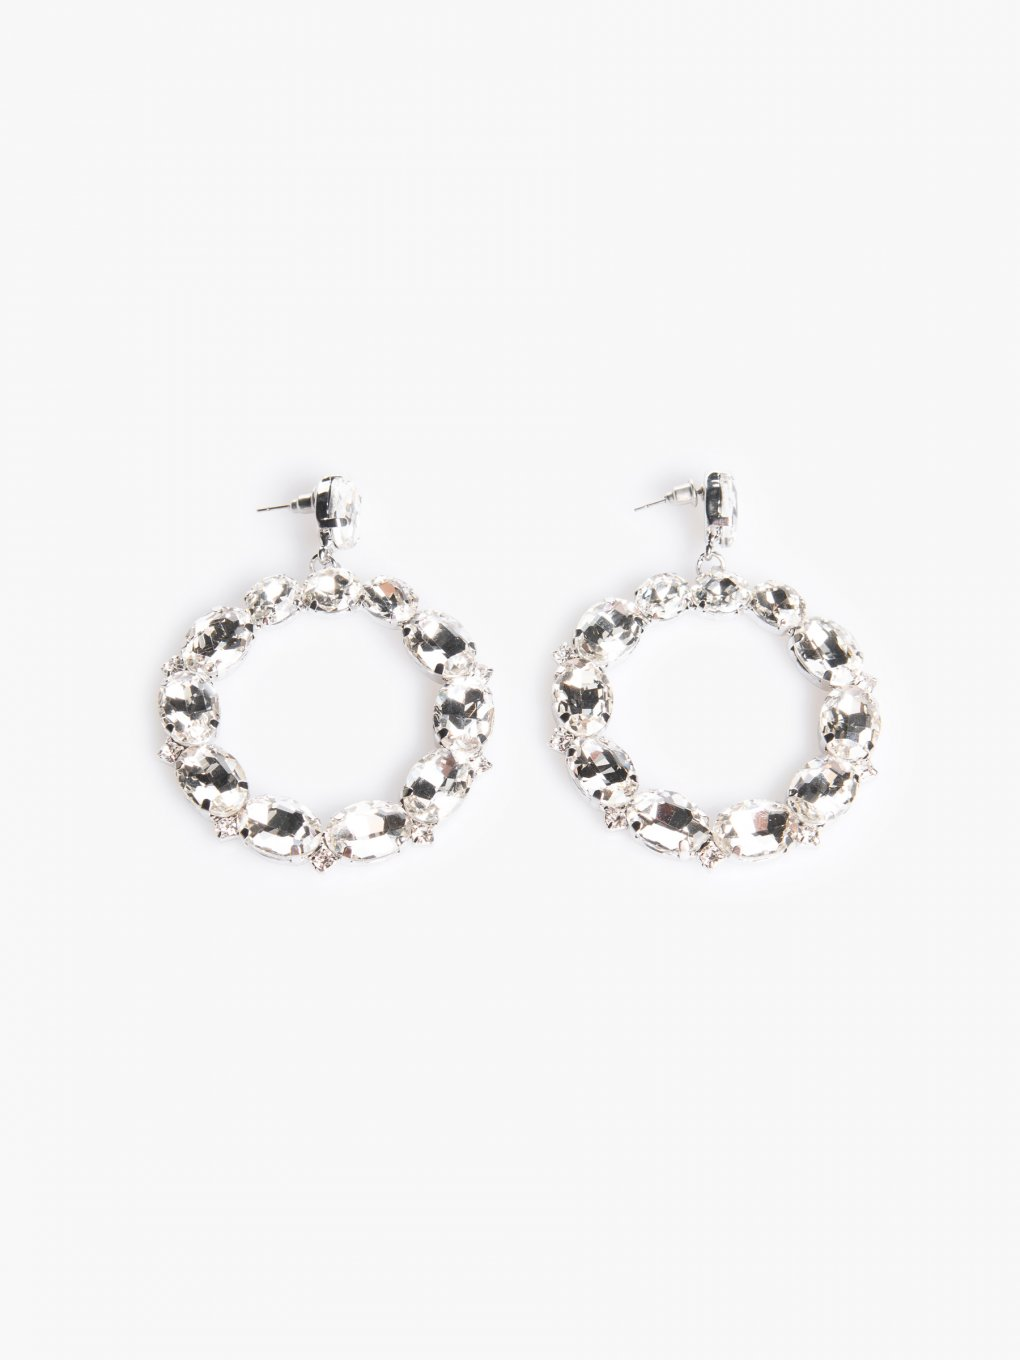 Circle earrings with faux stones